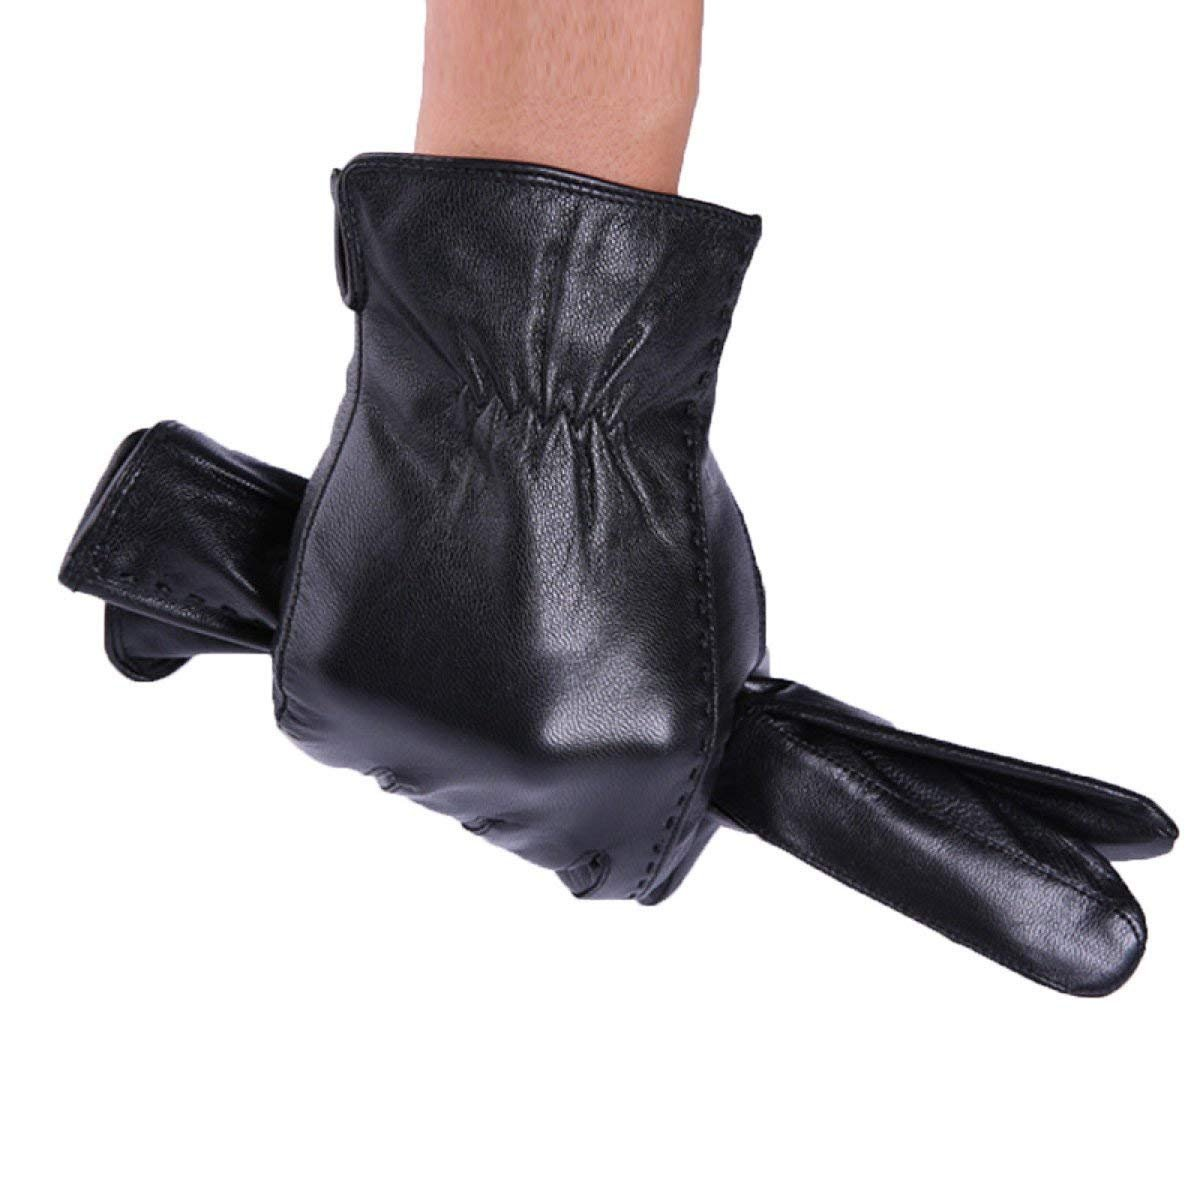 CWJ Gloves Men's Winter Cold Warm Warm and Thin Riding,Black,Large